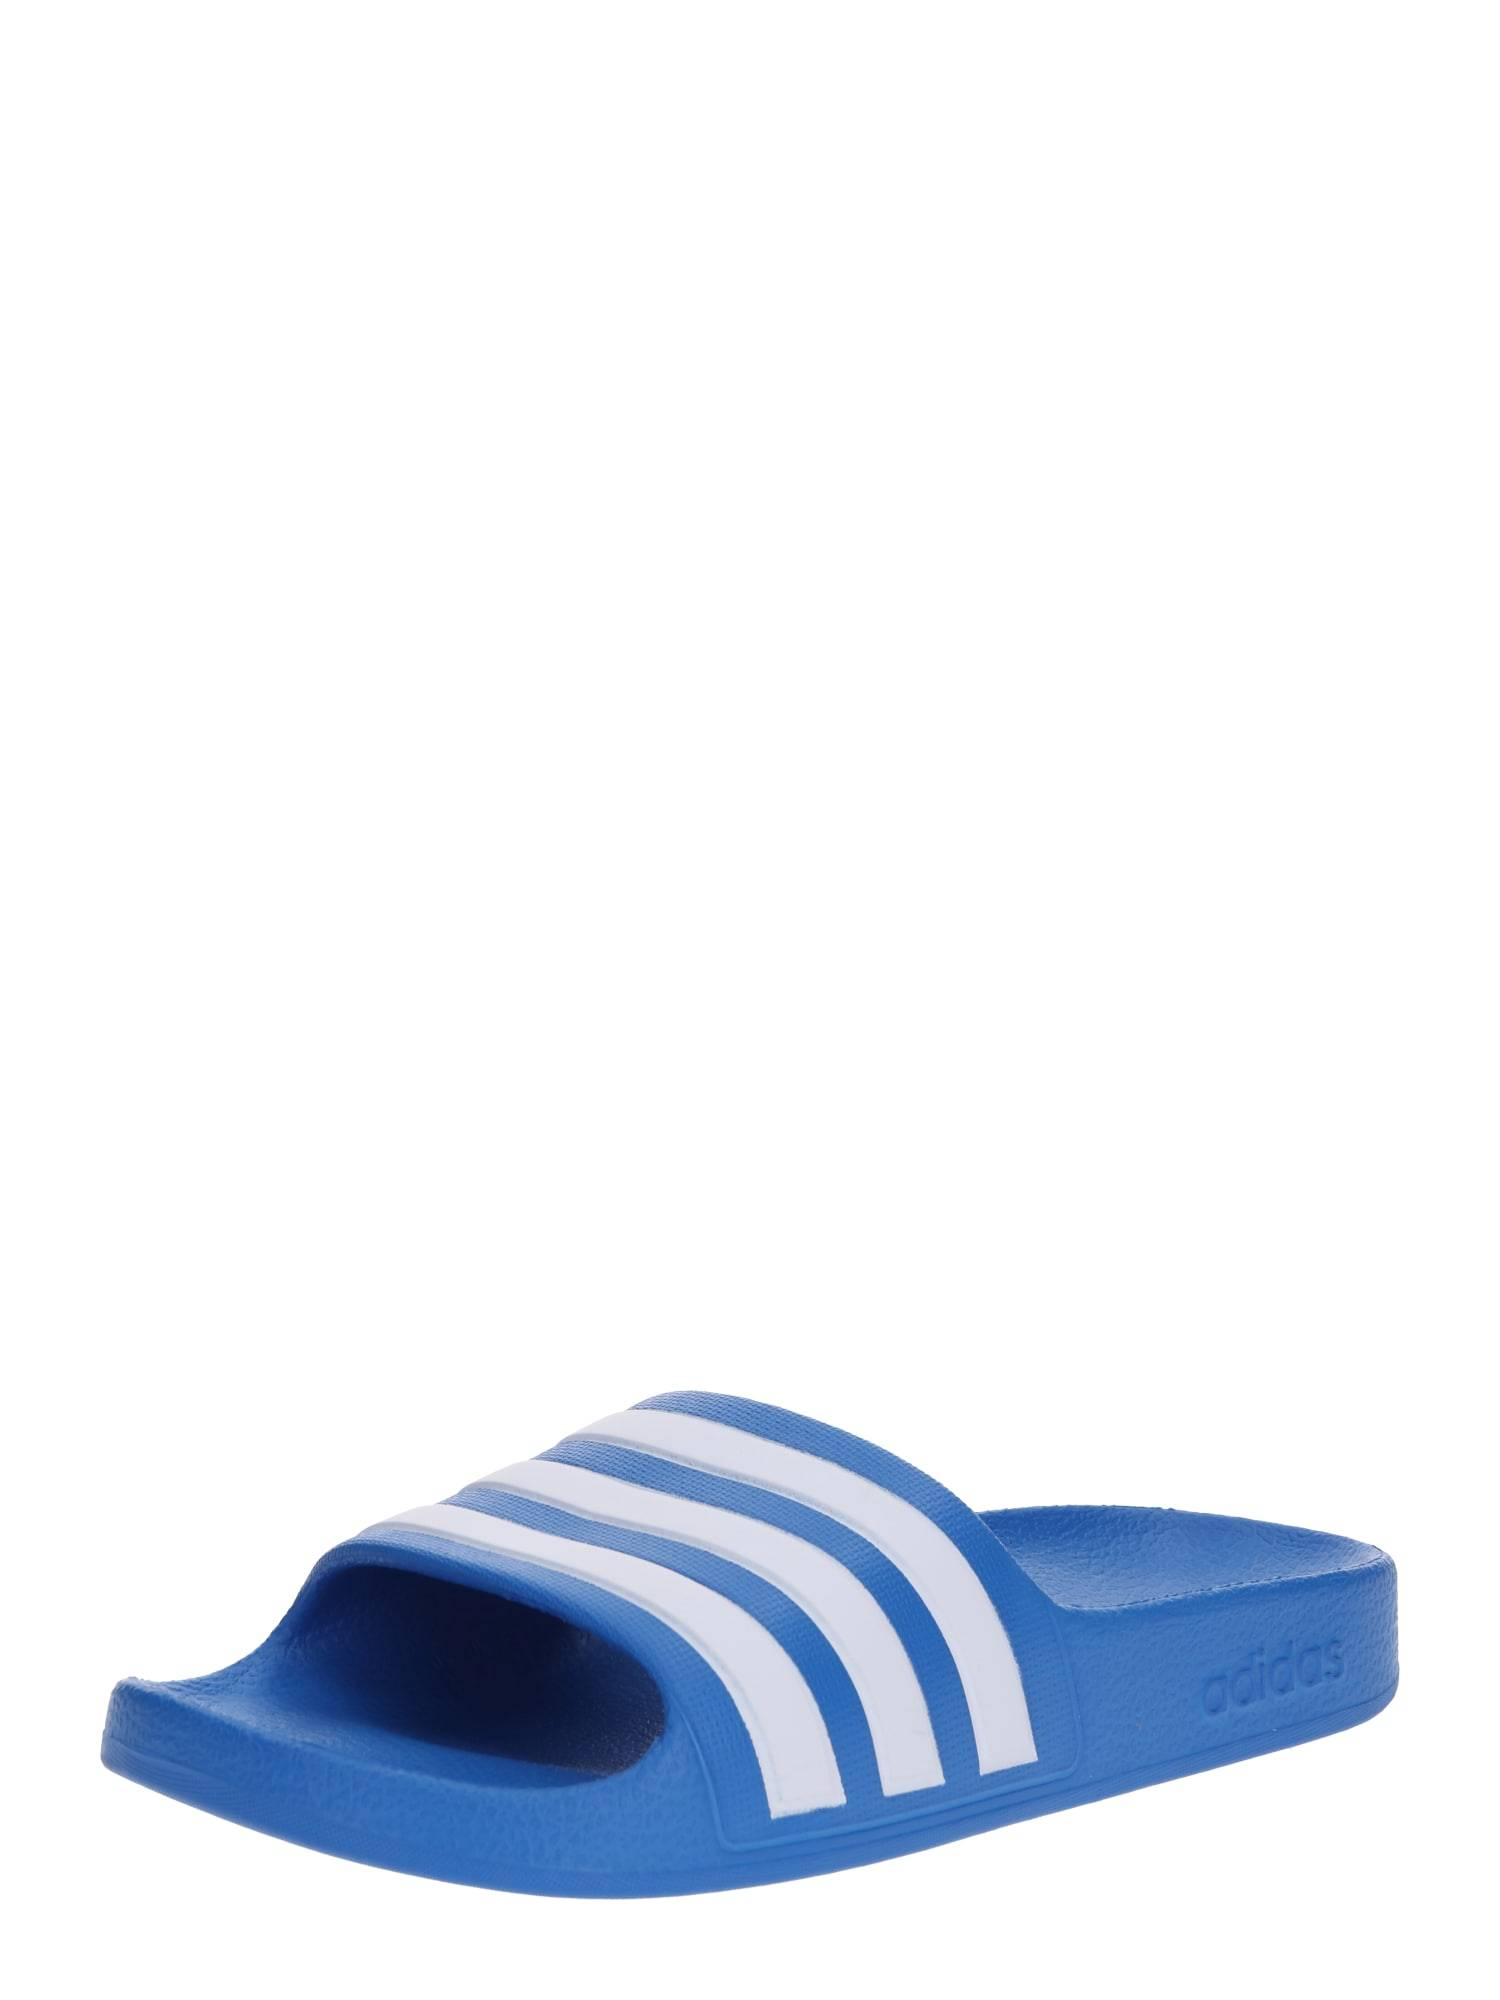 ADIDAS PERFORMANCE Claquettes / Tongs  - Bleu - Taille: 33 - boy